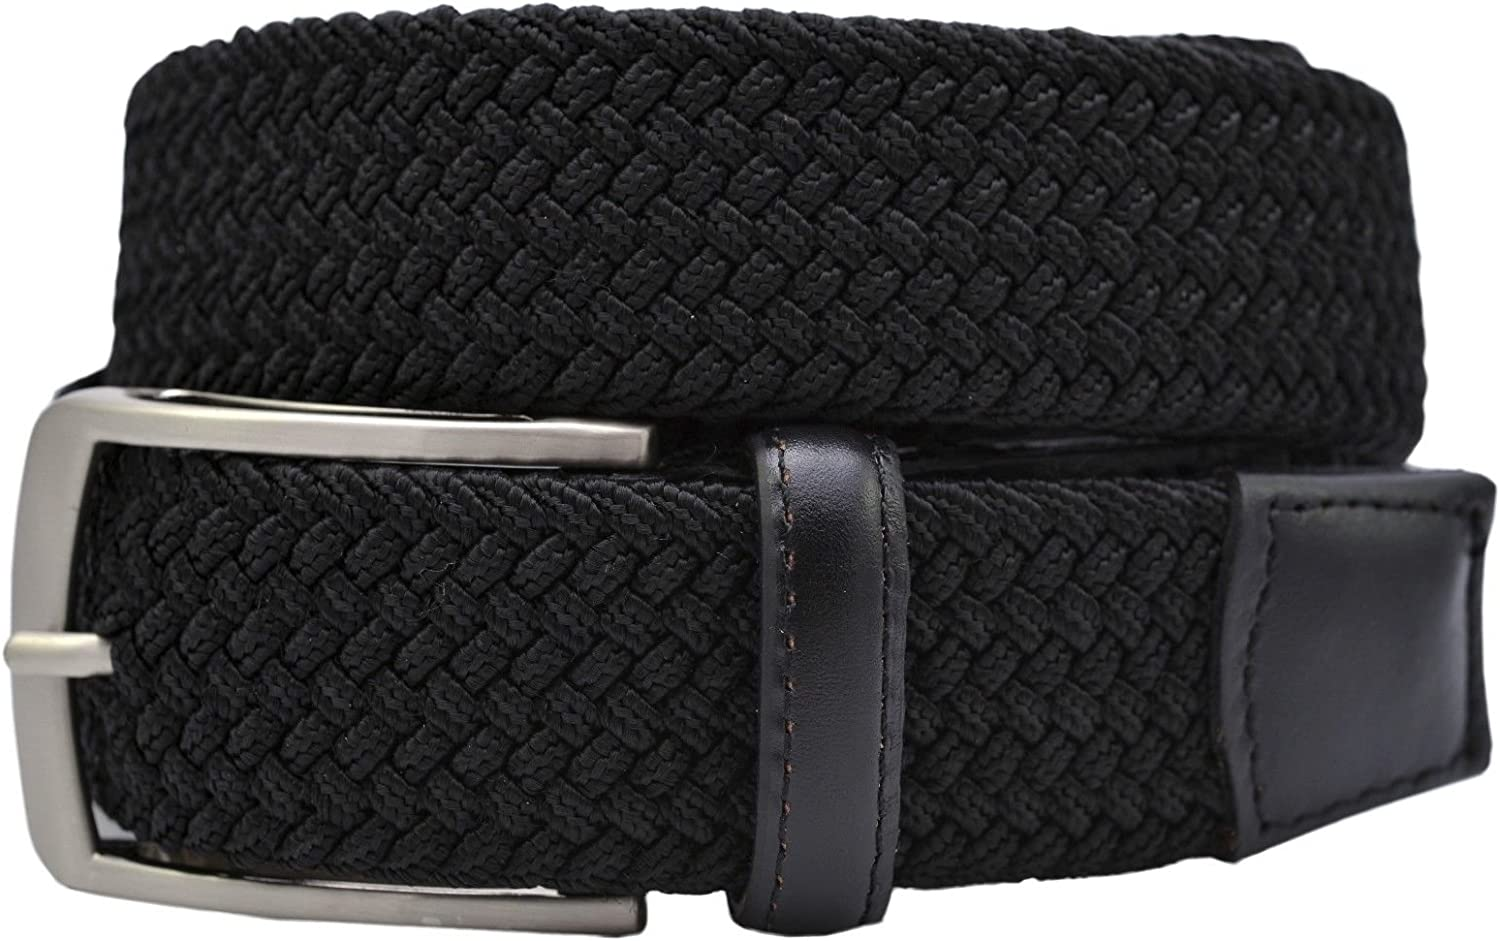 Greg Norman Omaha Mall Men's Beauty products Weave Stretch